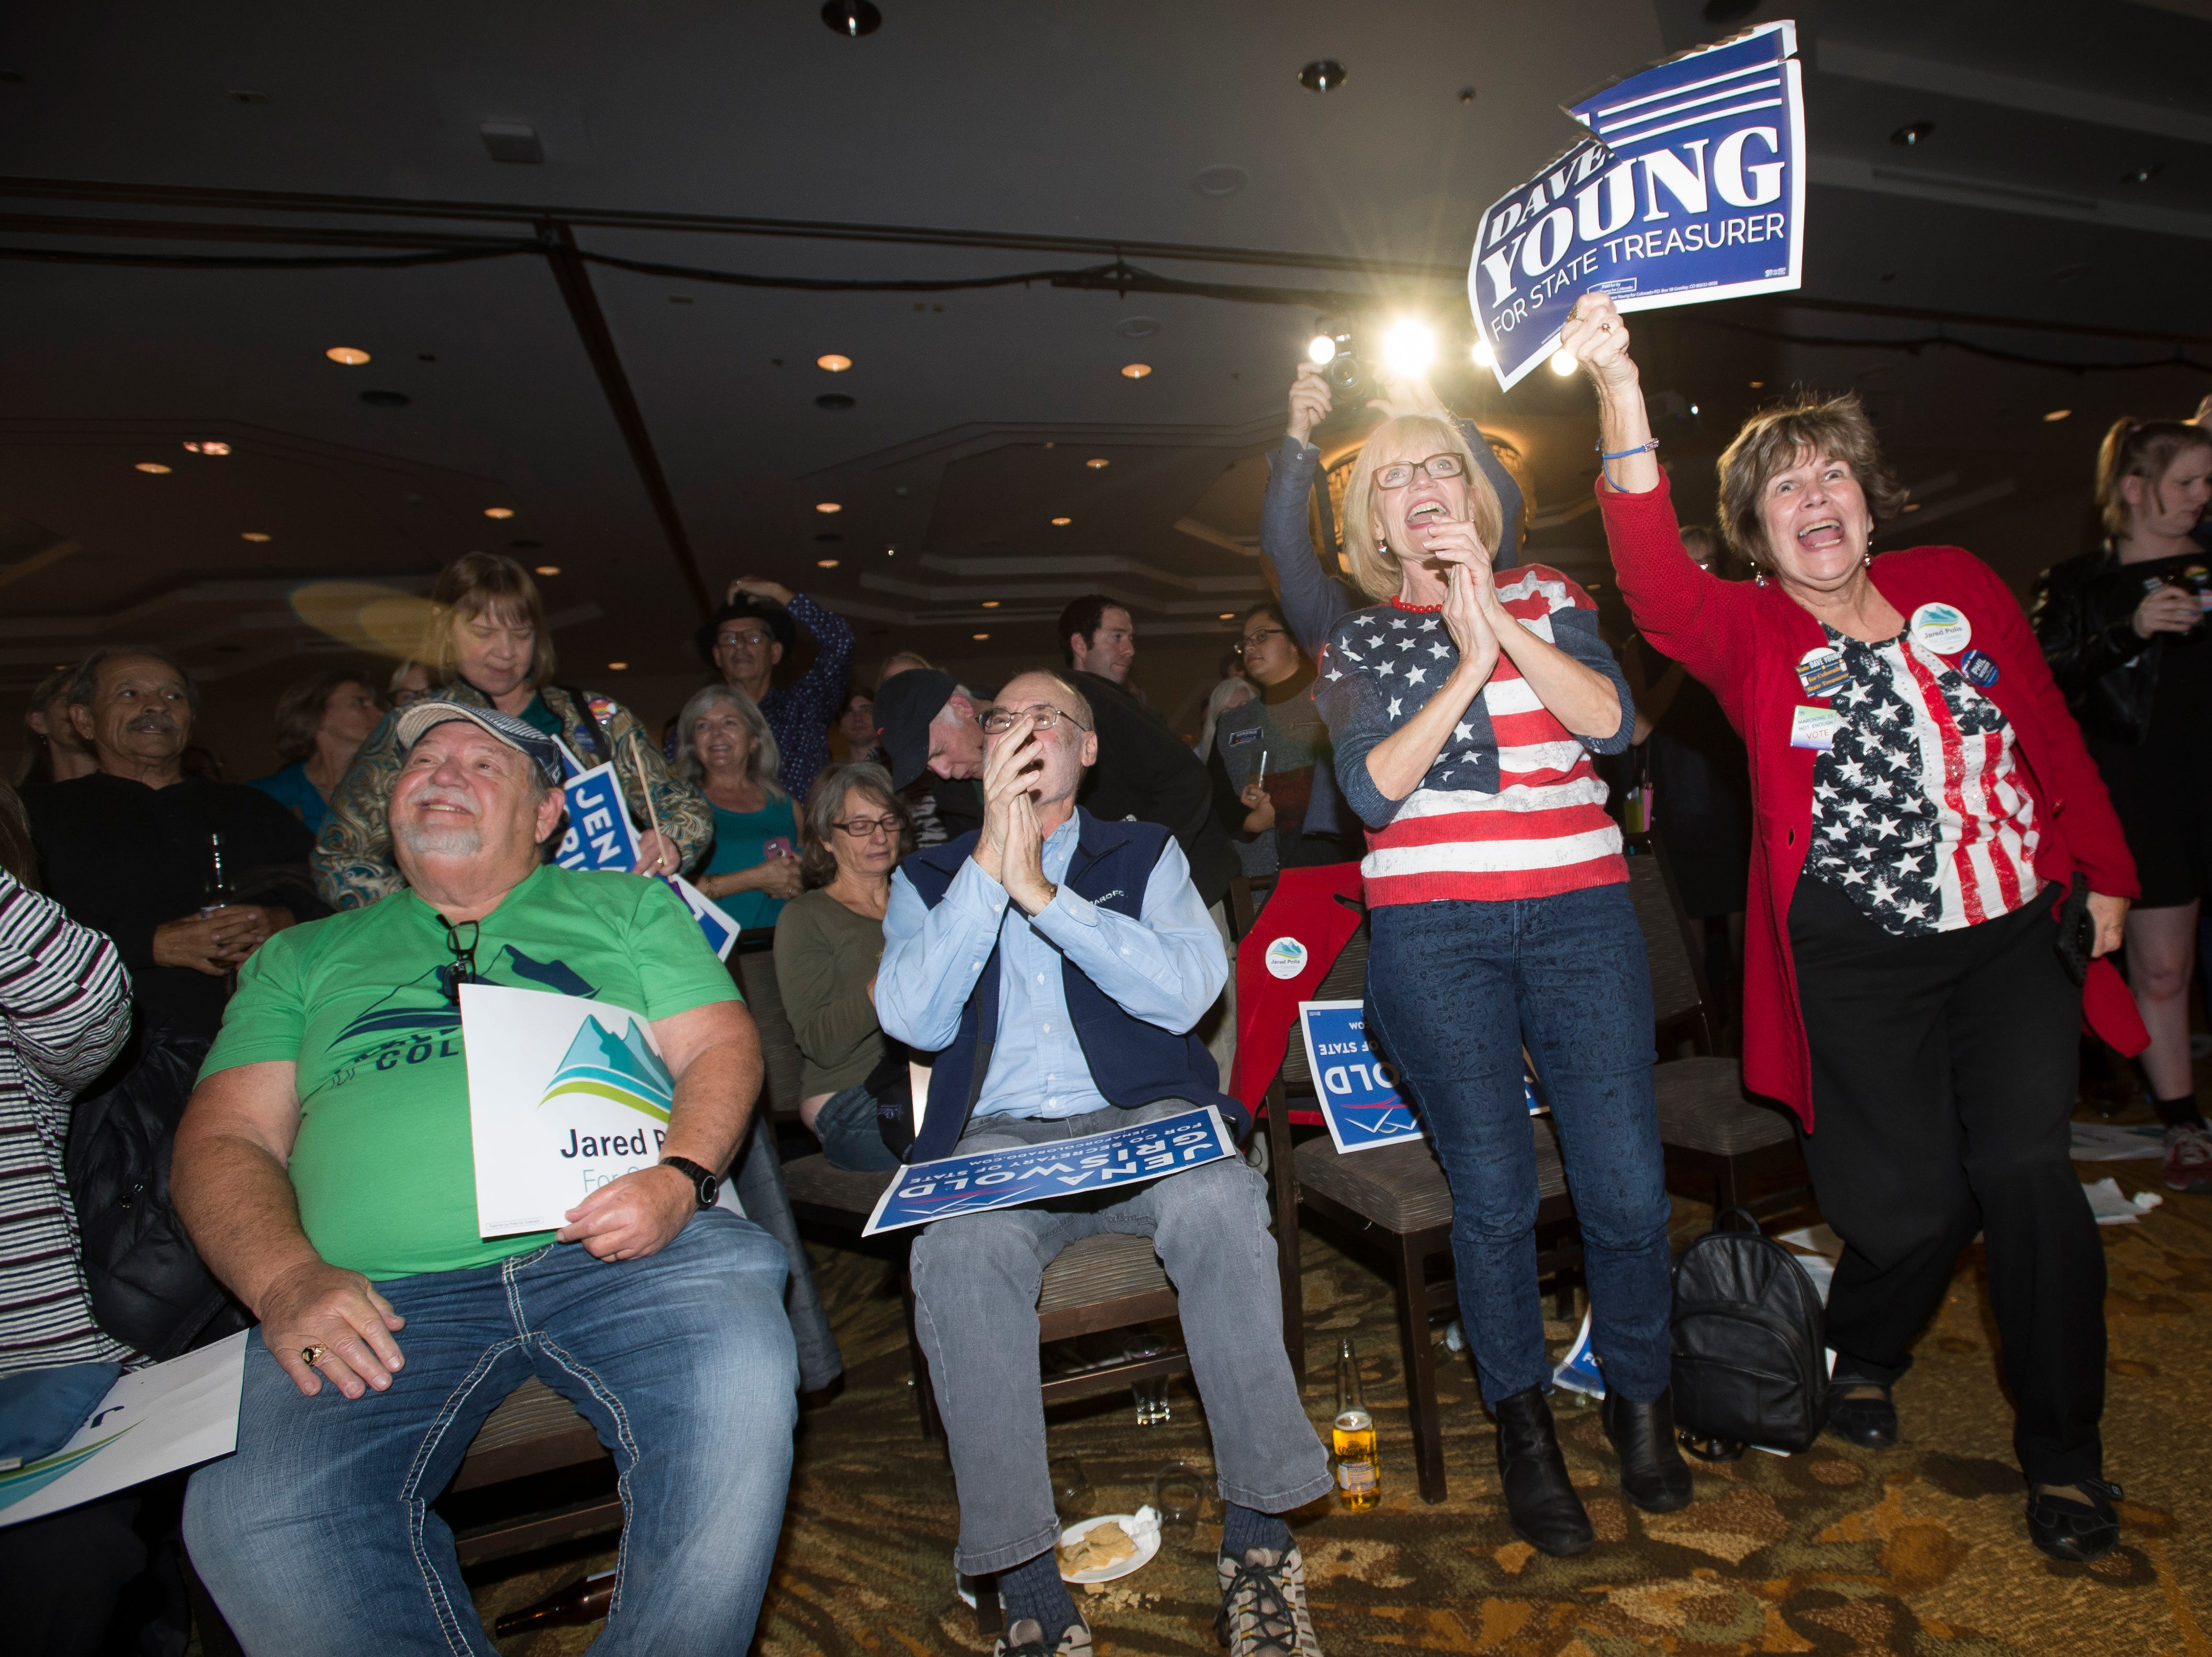 Audience members cheer as Democratic candidate for Colorado State Treasurer Dave Young speaks during an election watch party on Tuesday, Nov. 6, 2018, at the Westin Denver Downtown hotel in Denver, Colo.